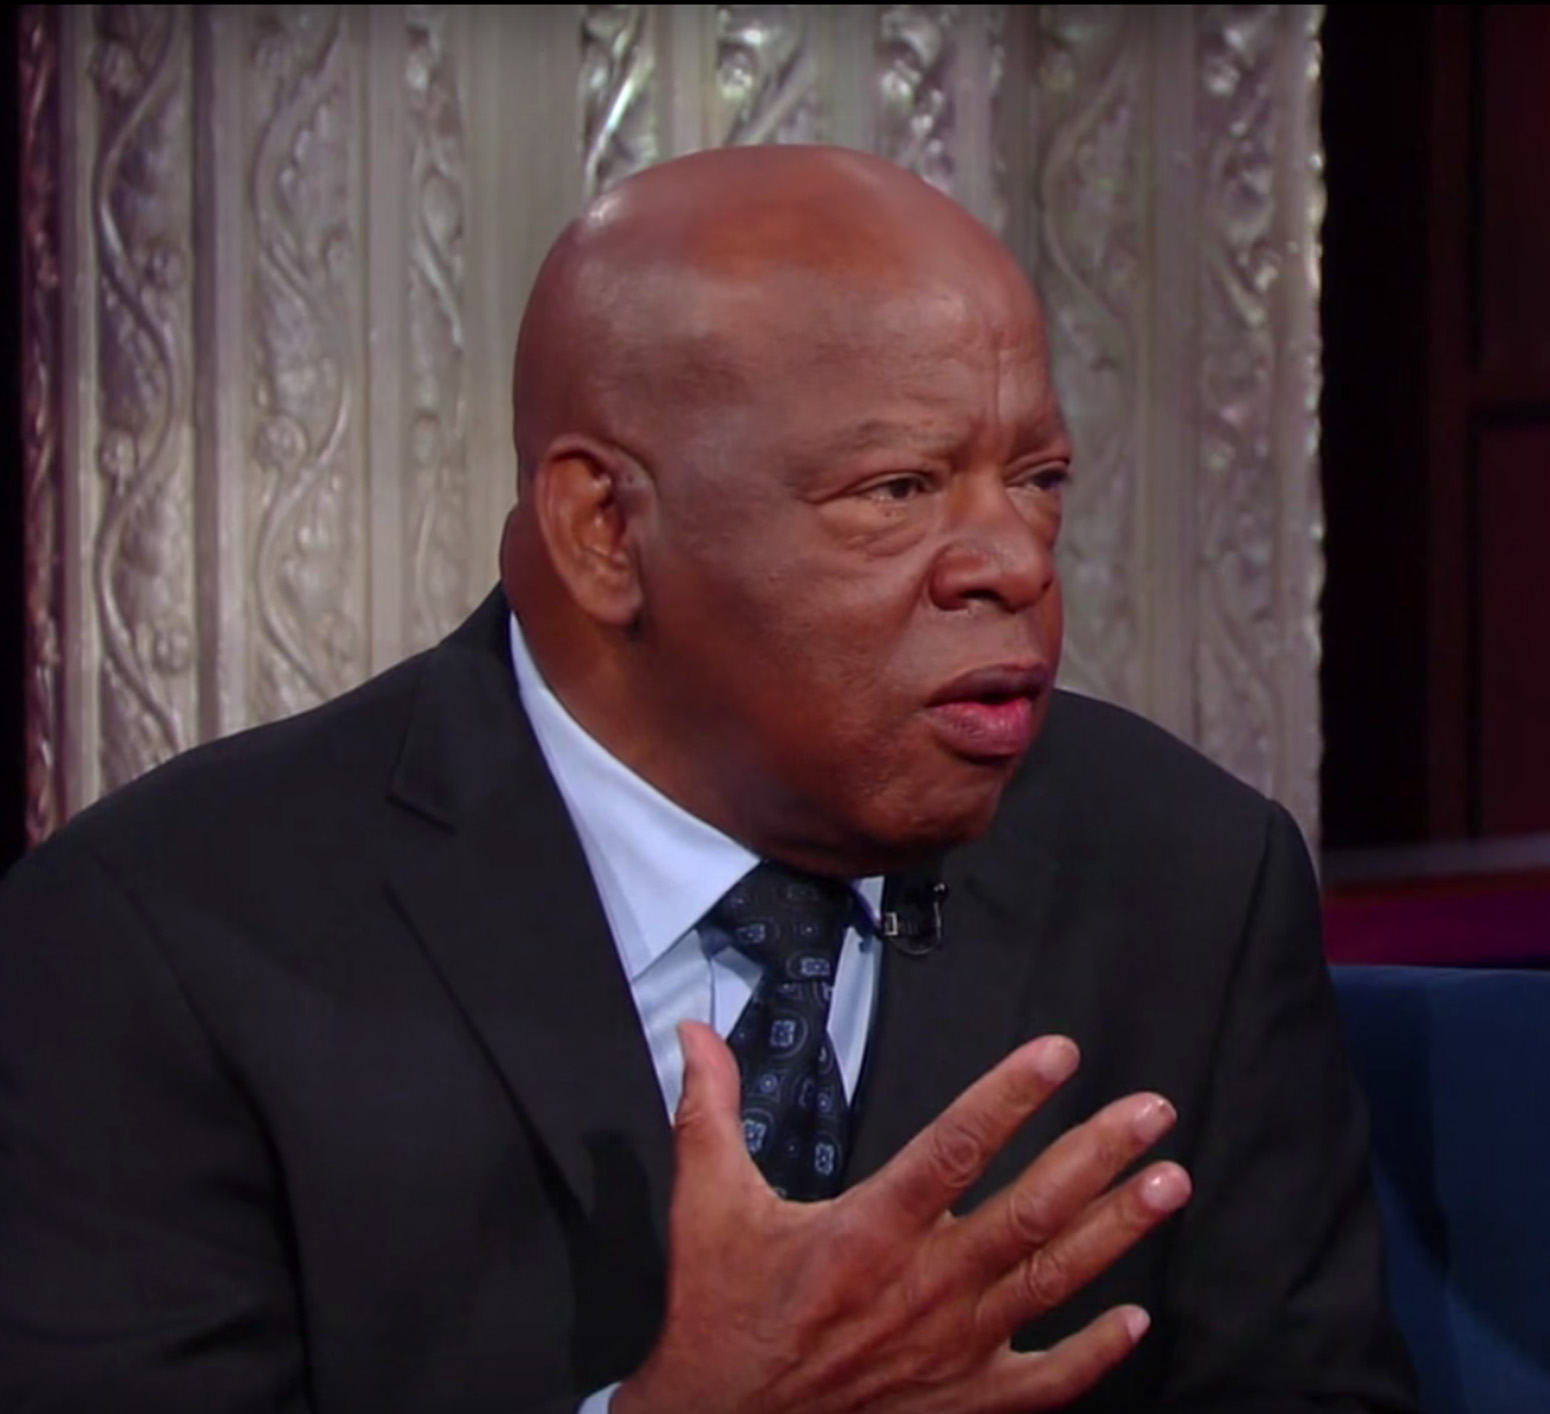 John Lewis on The Late Show with Stephen Colbert